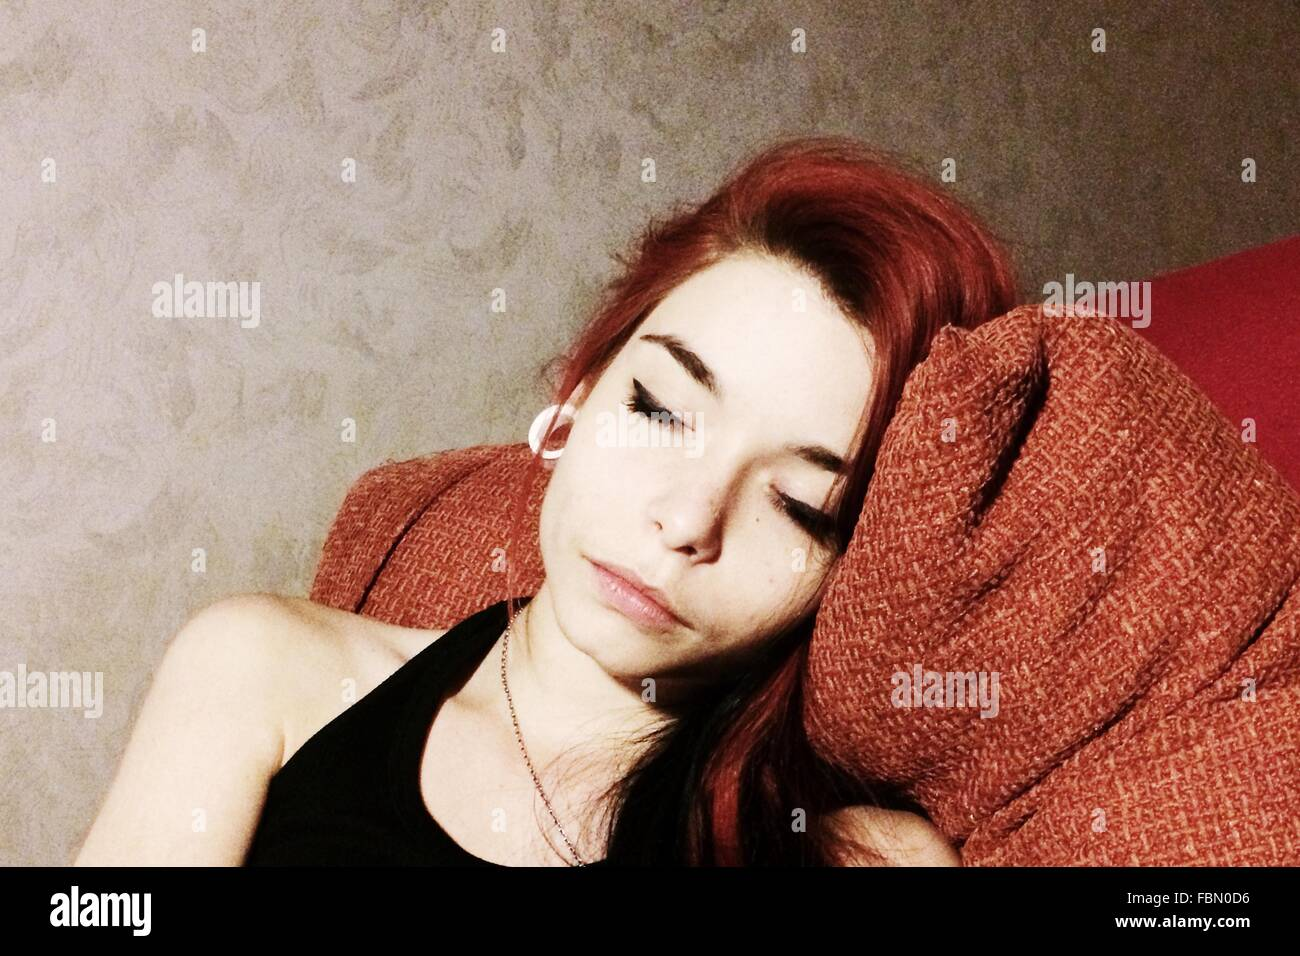 Young Woman Resting On Sofa Against Wall - Stock Image